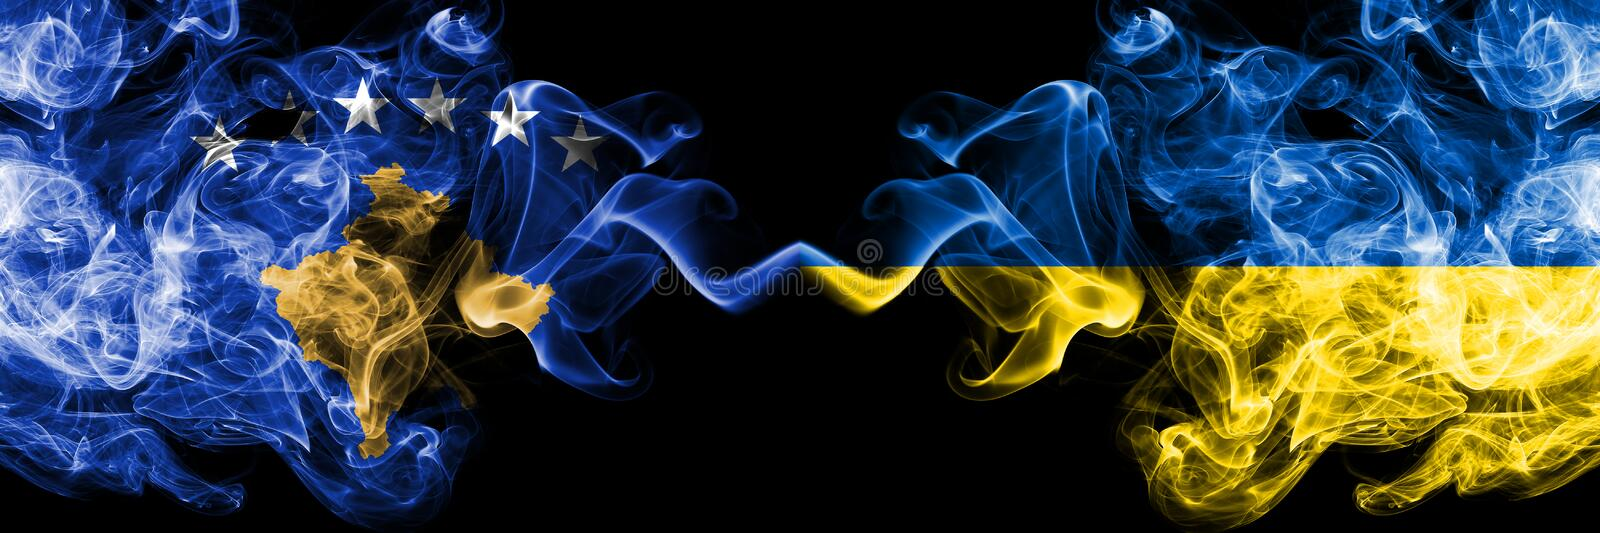 Kosovo vs Ukraine, Ukrainian smoky mystic flags placed side by side. Thick colored silky smokes combination of Kosovo and Ukraine. Ukrainian flag royalty free illustration